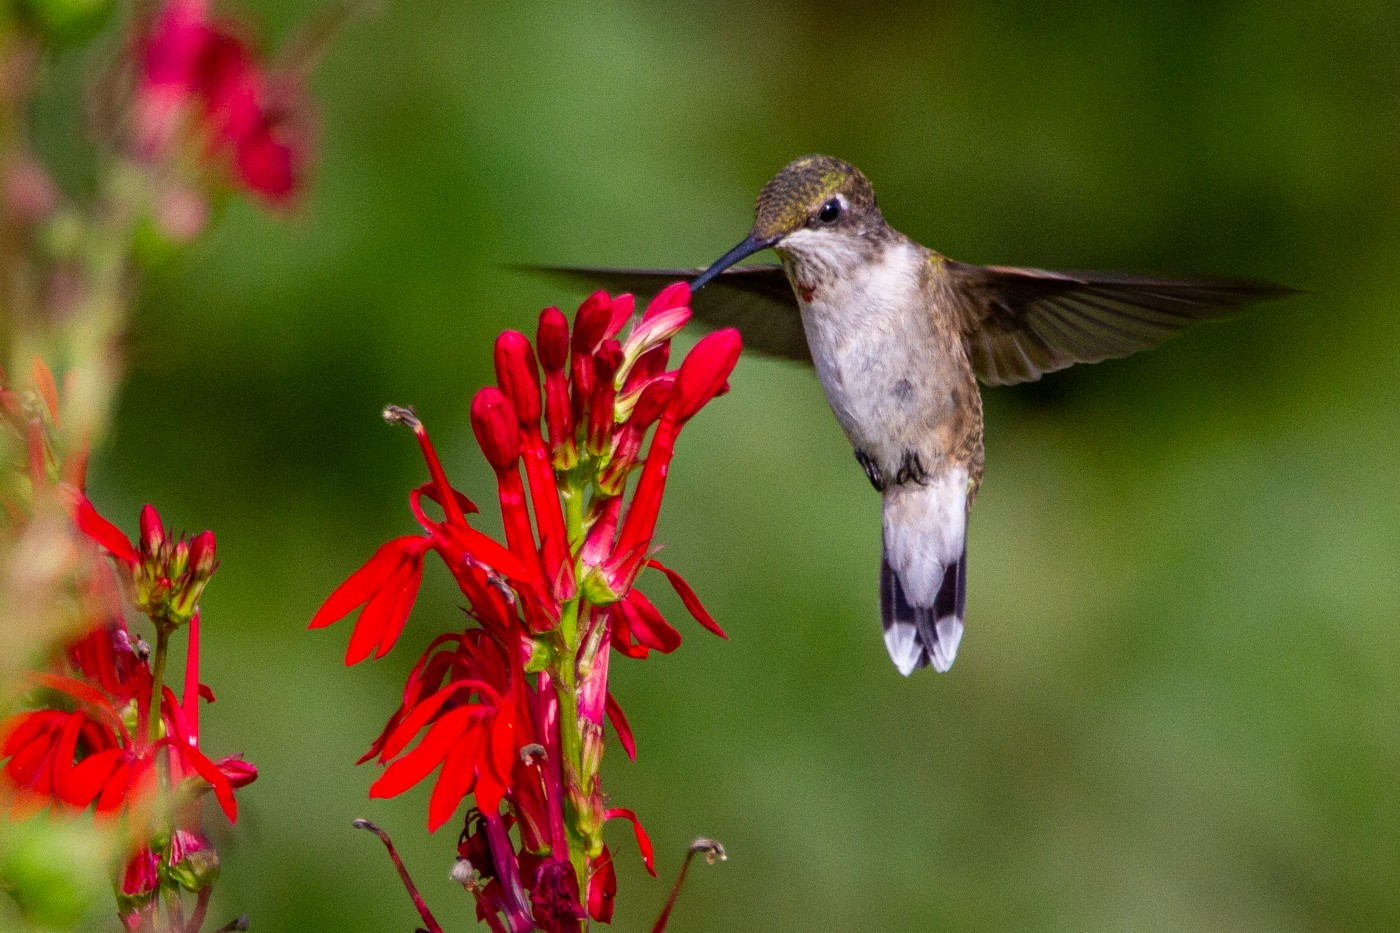 A hummingbird hovering near a red flower